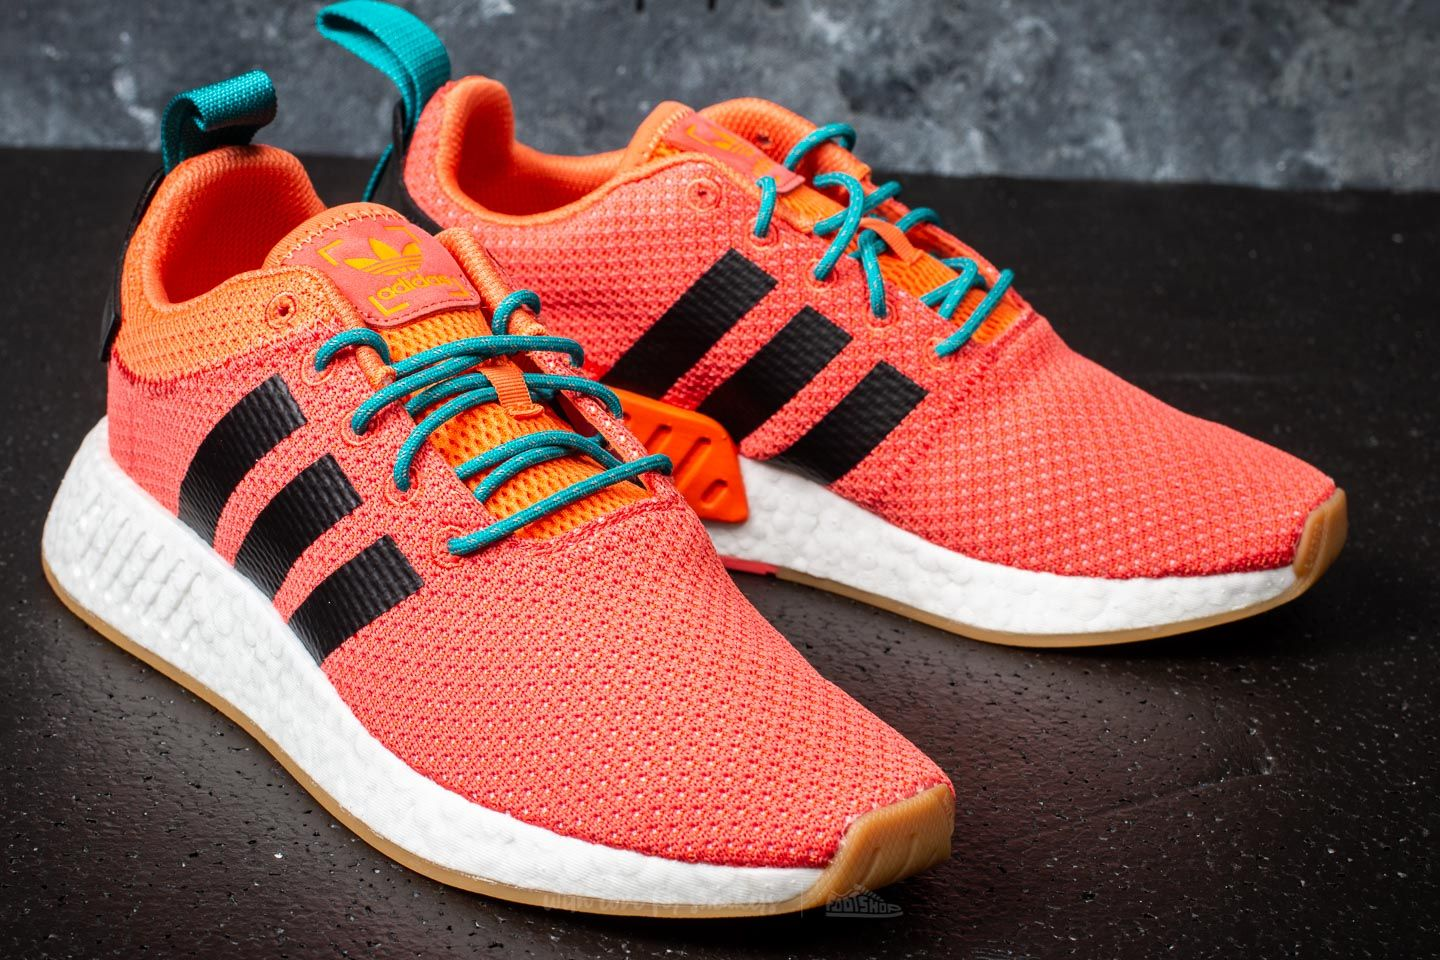 low priced 6af55 8732d adidas NMD_R2 Summer Trace Orange/ Gum/ Cloud White | Footshop